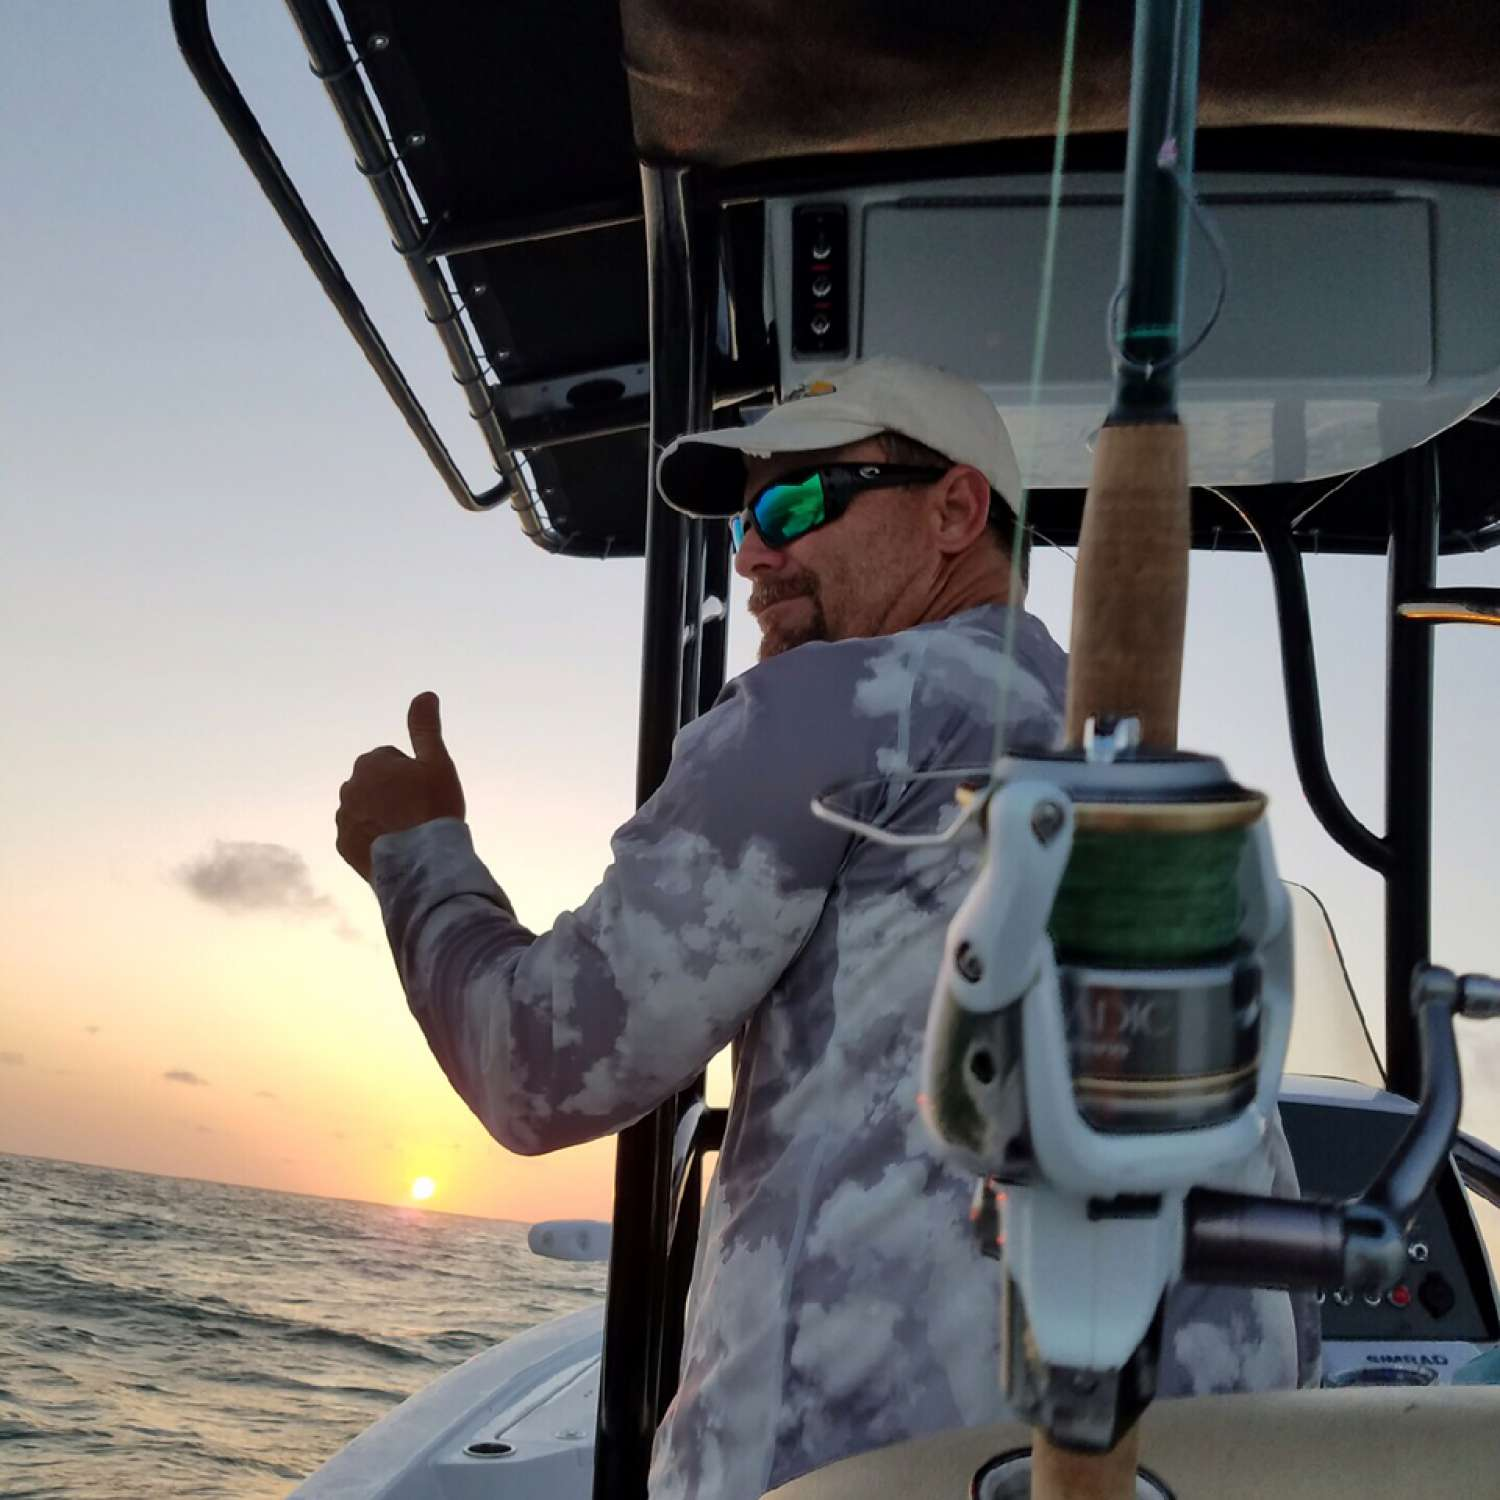 Title: Sunset - On board their Sportsman Tournament 234 Bay Boat - Location: Oviedo, Florida. Participating in the Photo Contest #SportsmanJune2016